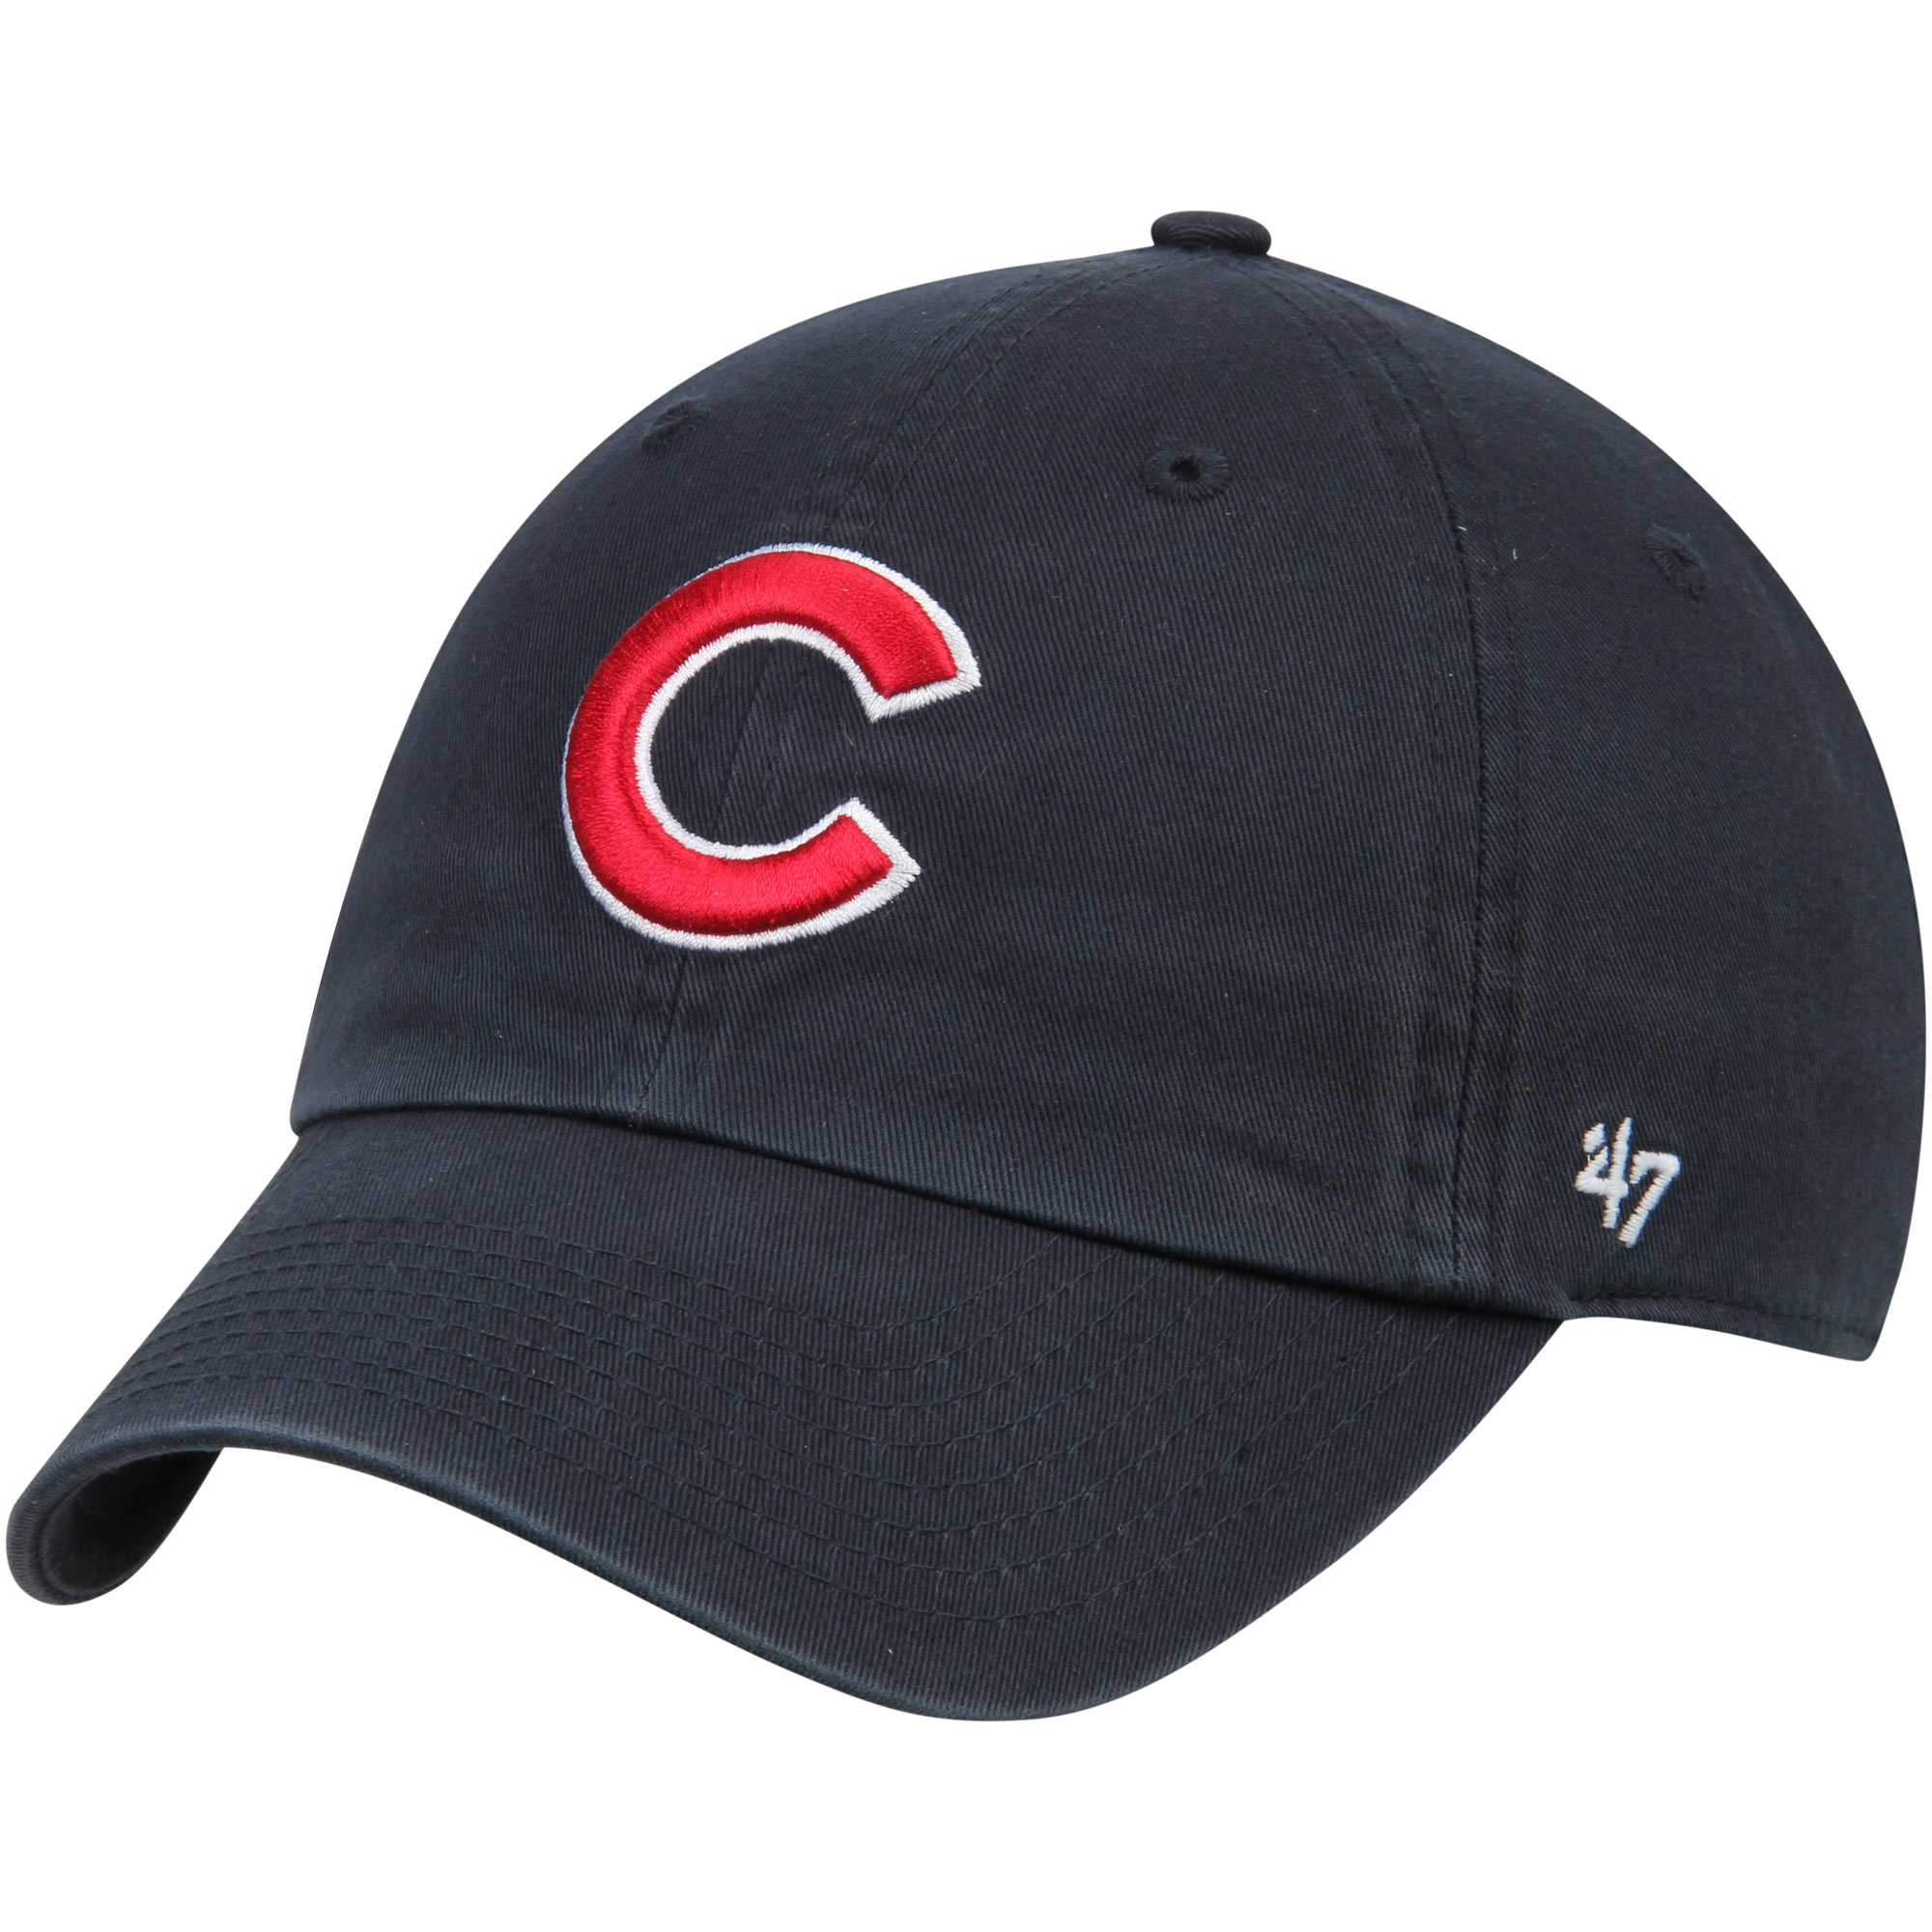 Chicago Cubs '47 C Clean Up Adjustable Hat - Navy - OSFA